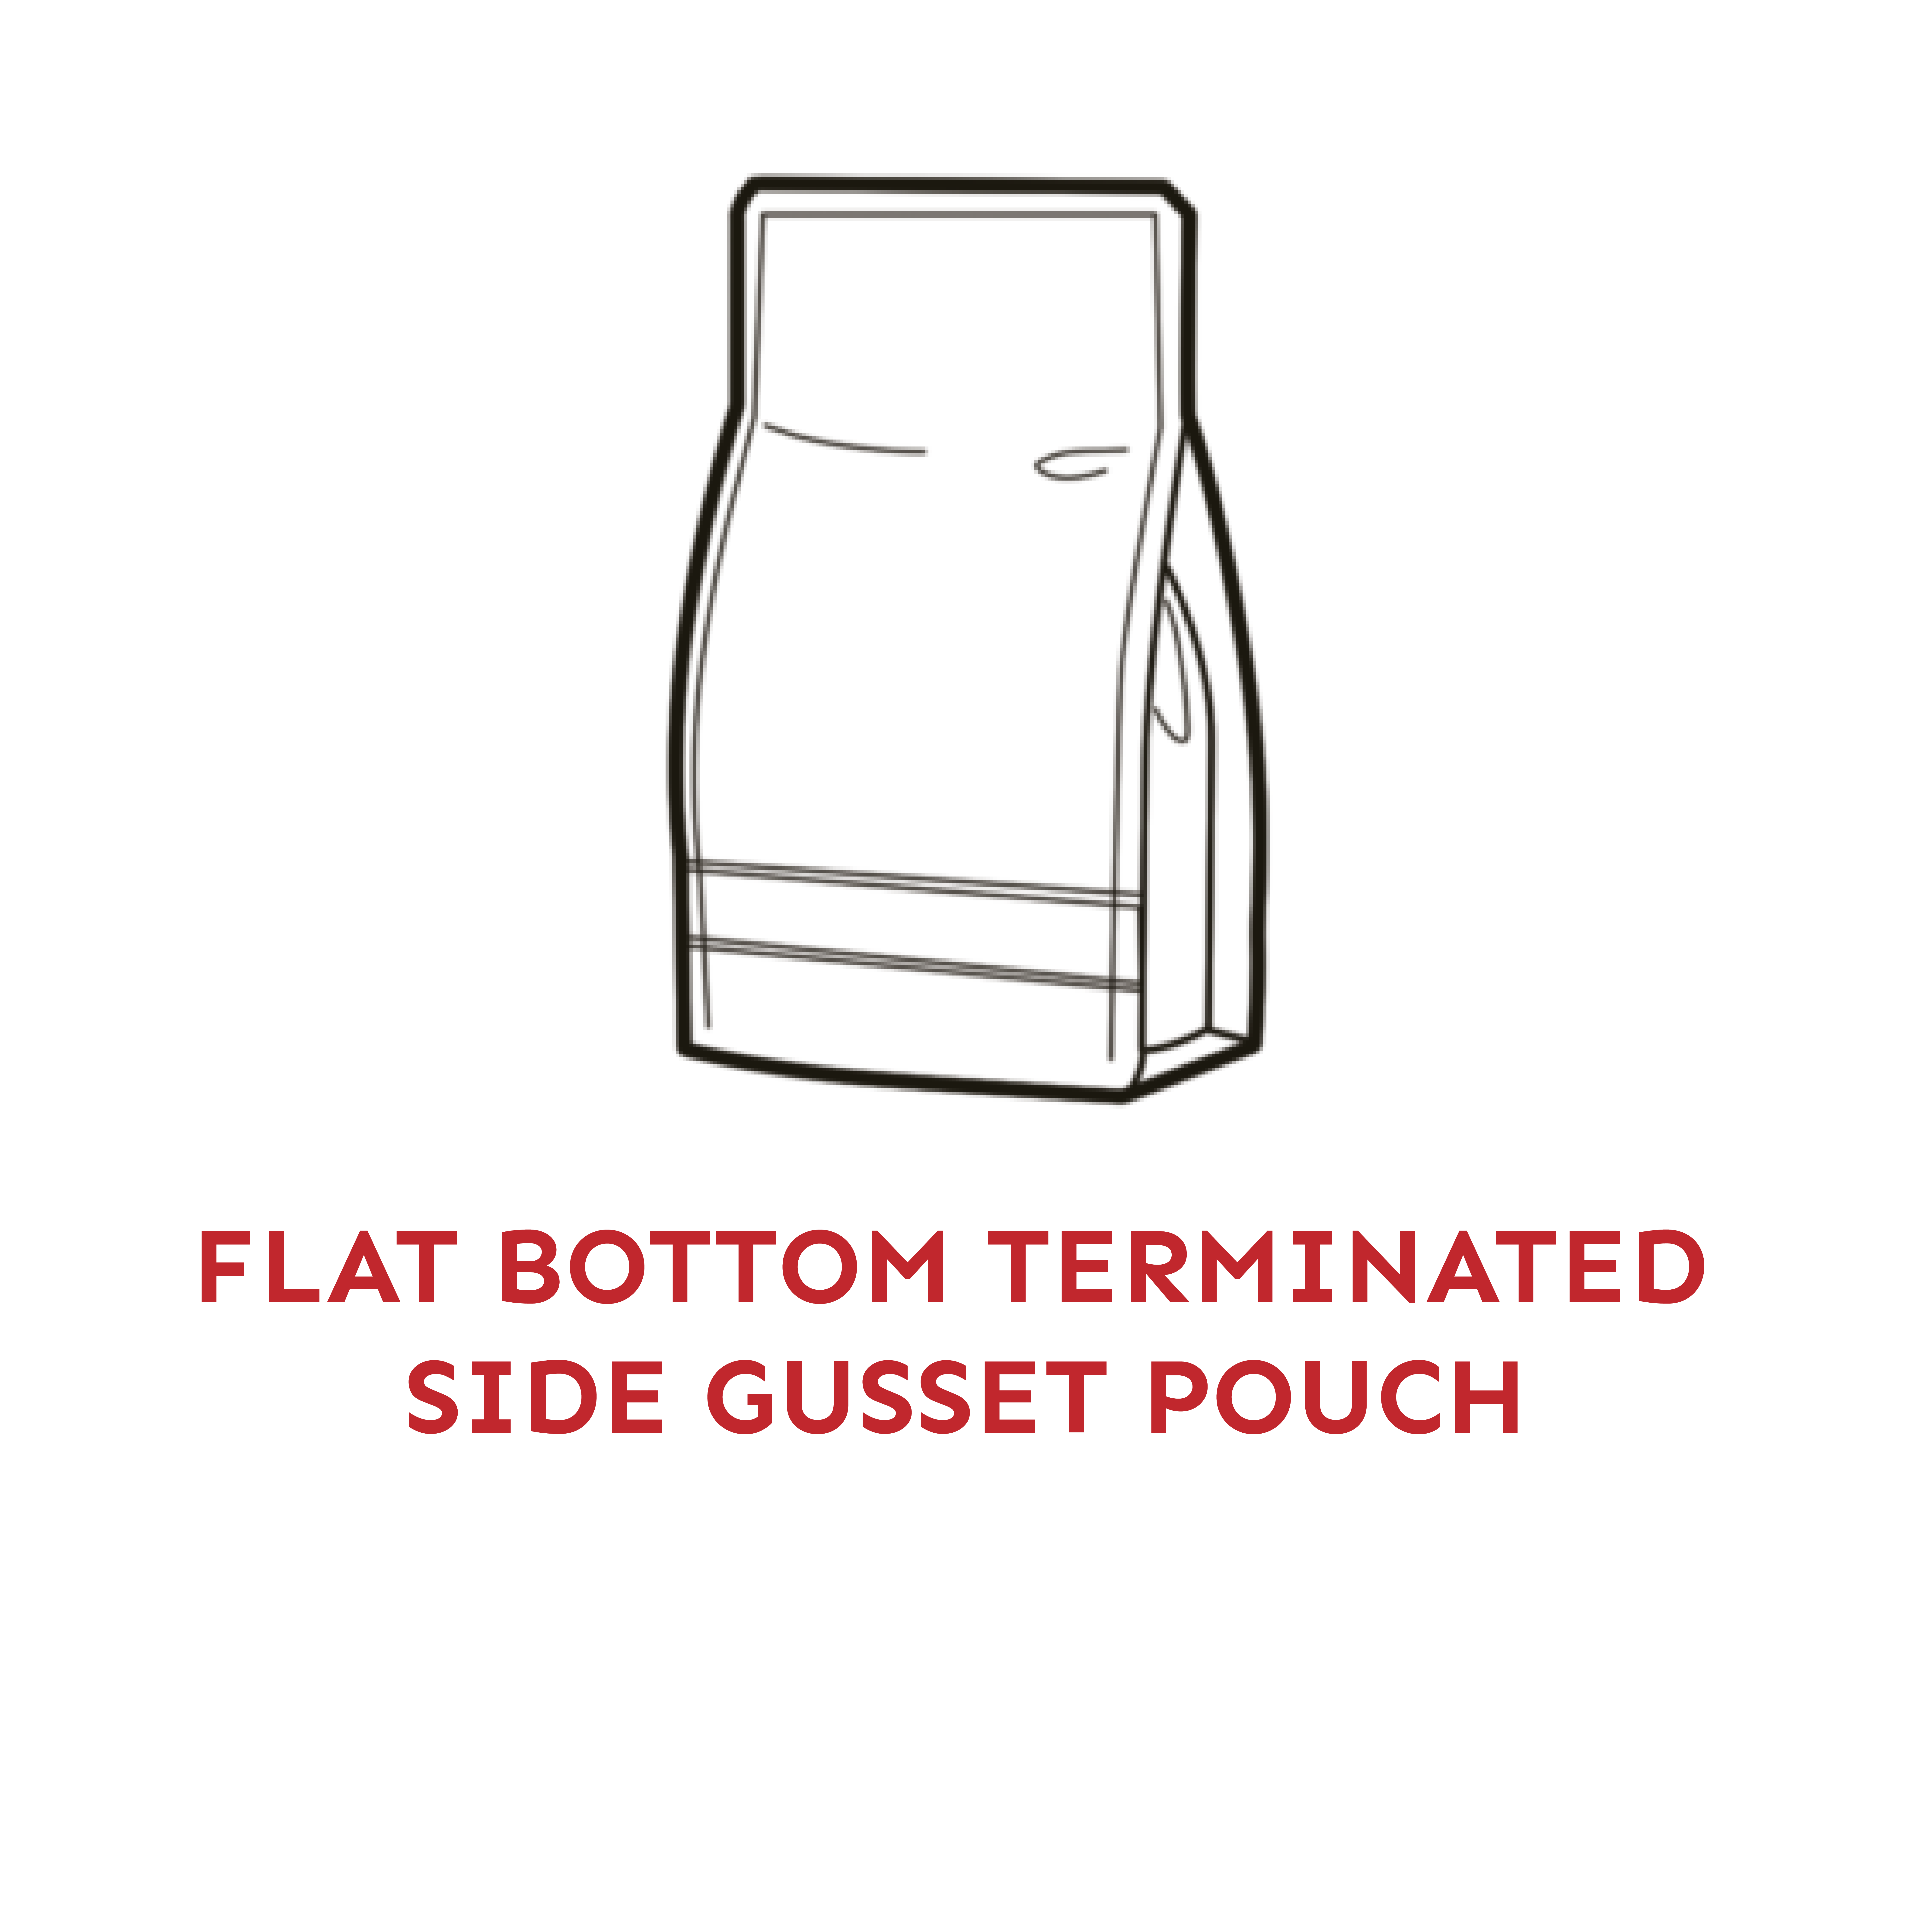 Flat Bottom Terminated Side Gusset Pouch Packaging